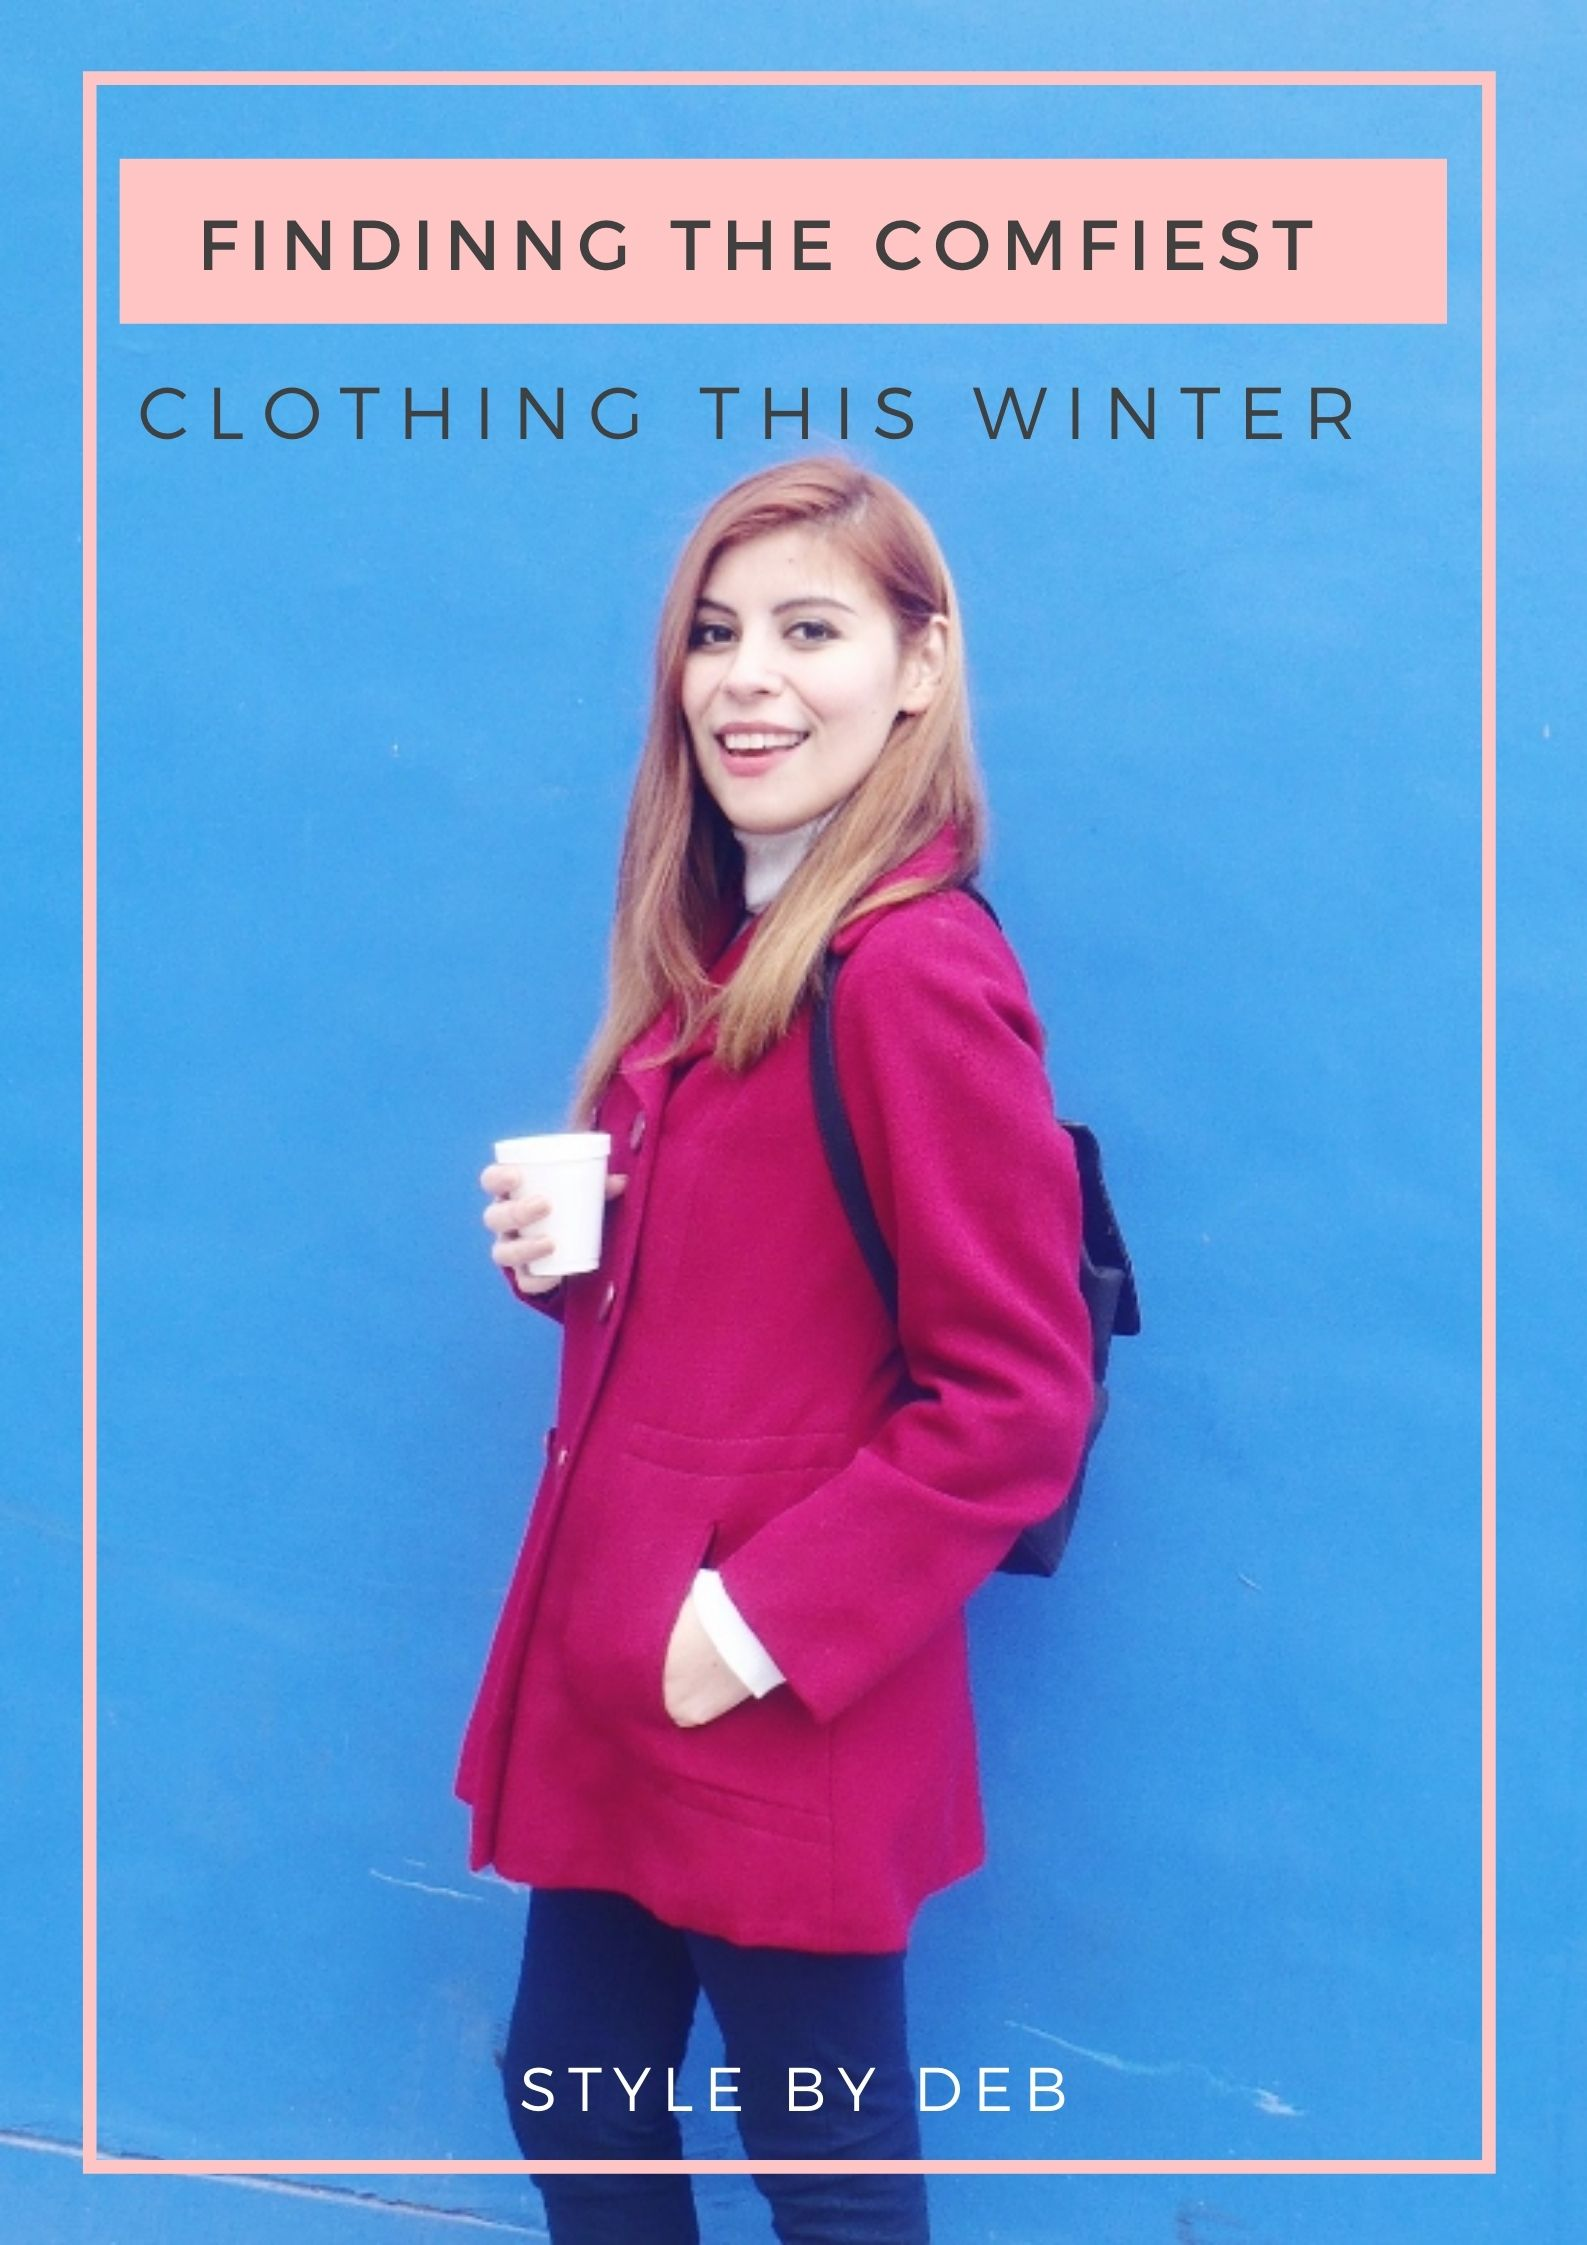 Style by Deb finding the comfiest clothing this winter